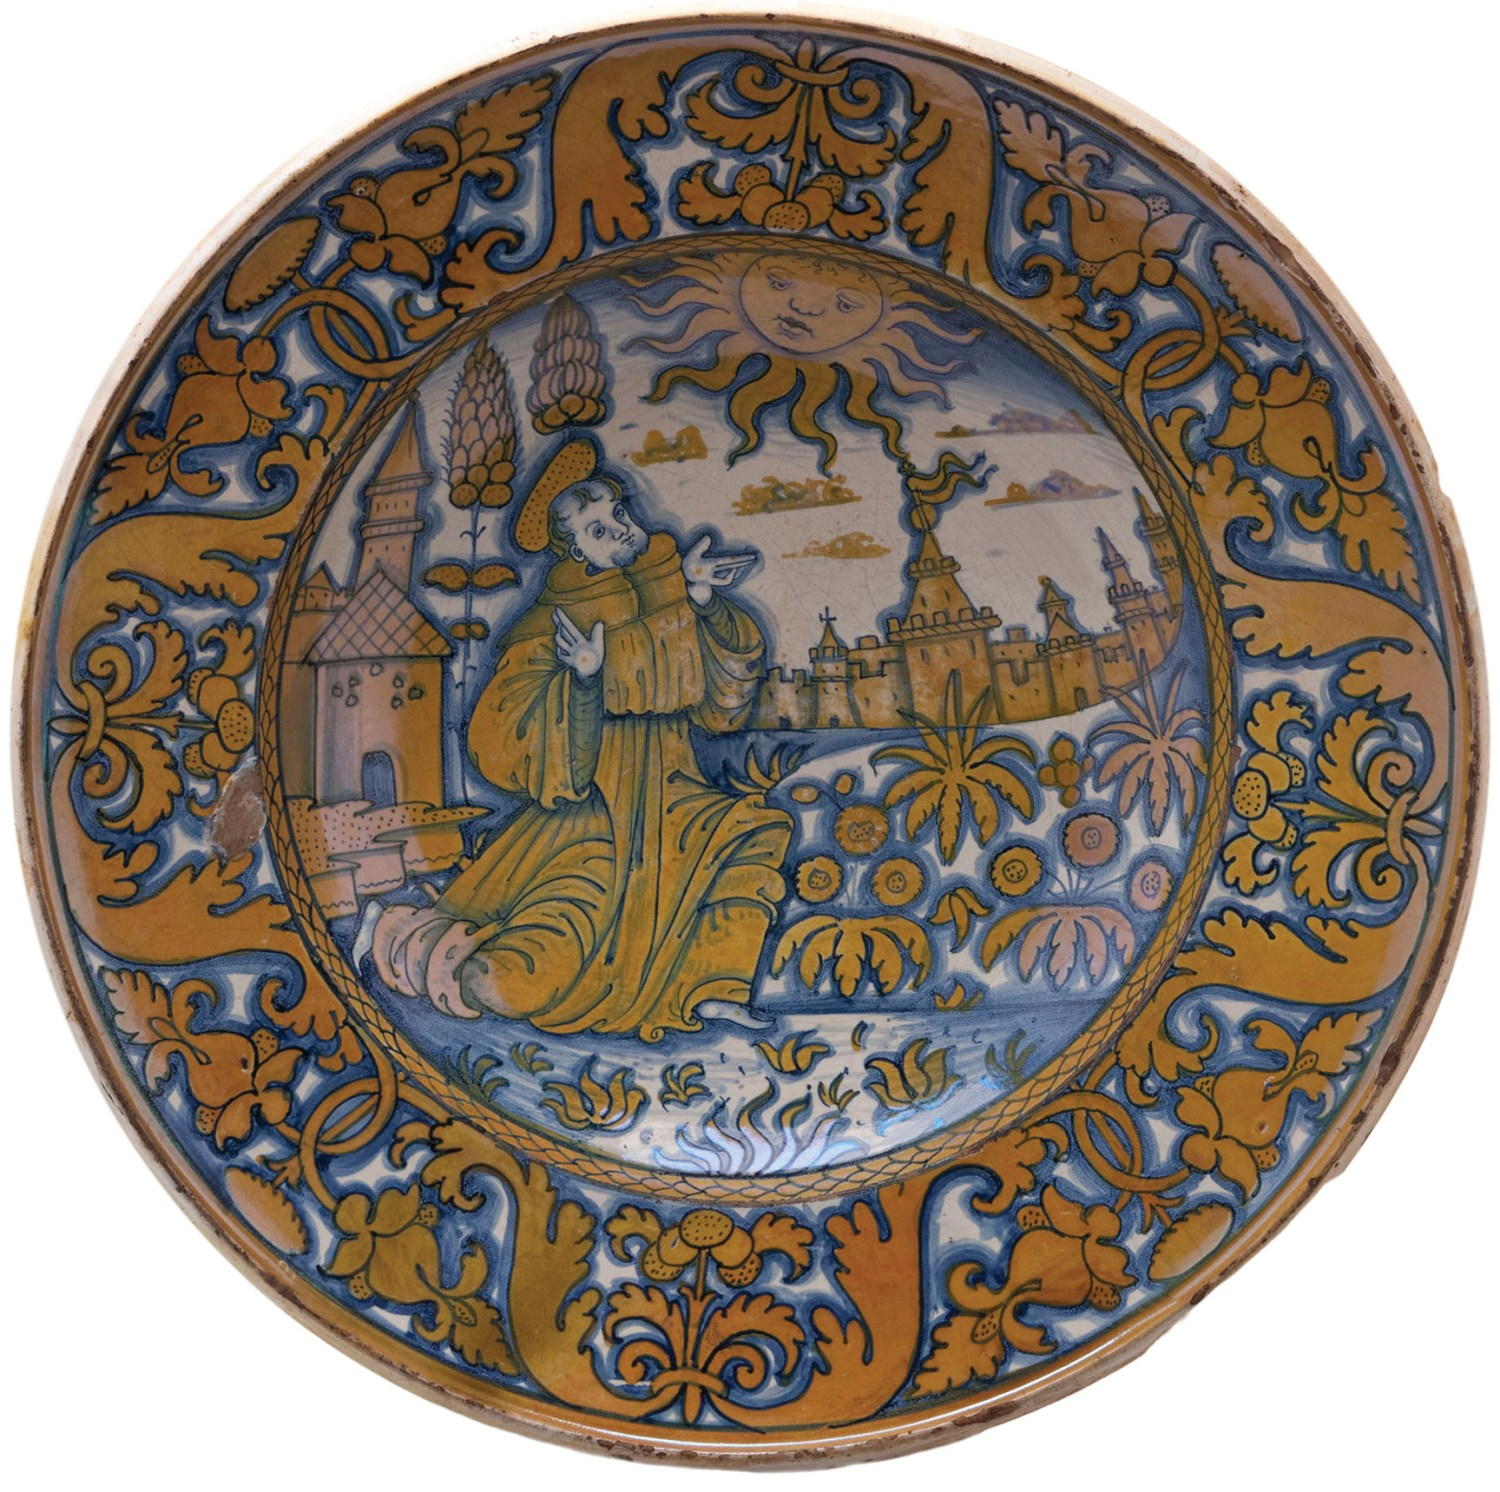 Right A similar maiolica plate showing St Francis composing the Cantico di frate sole. Made in Deruta, c.1515. Size: 42cm in diameter